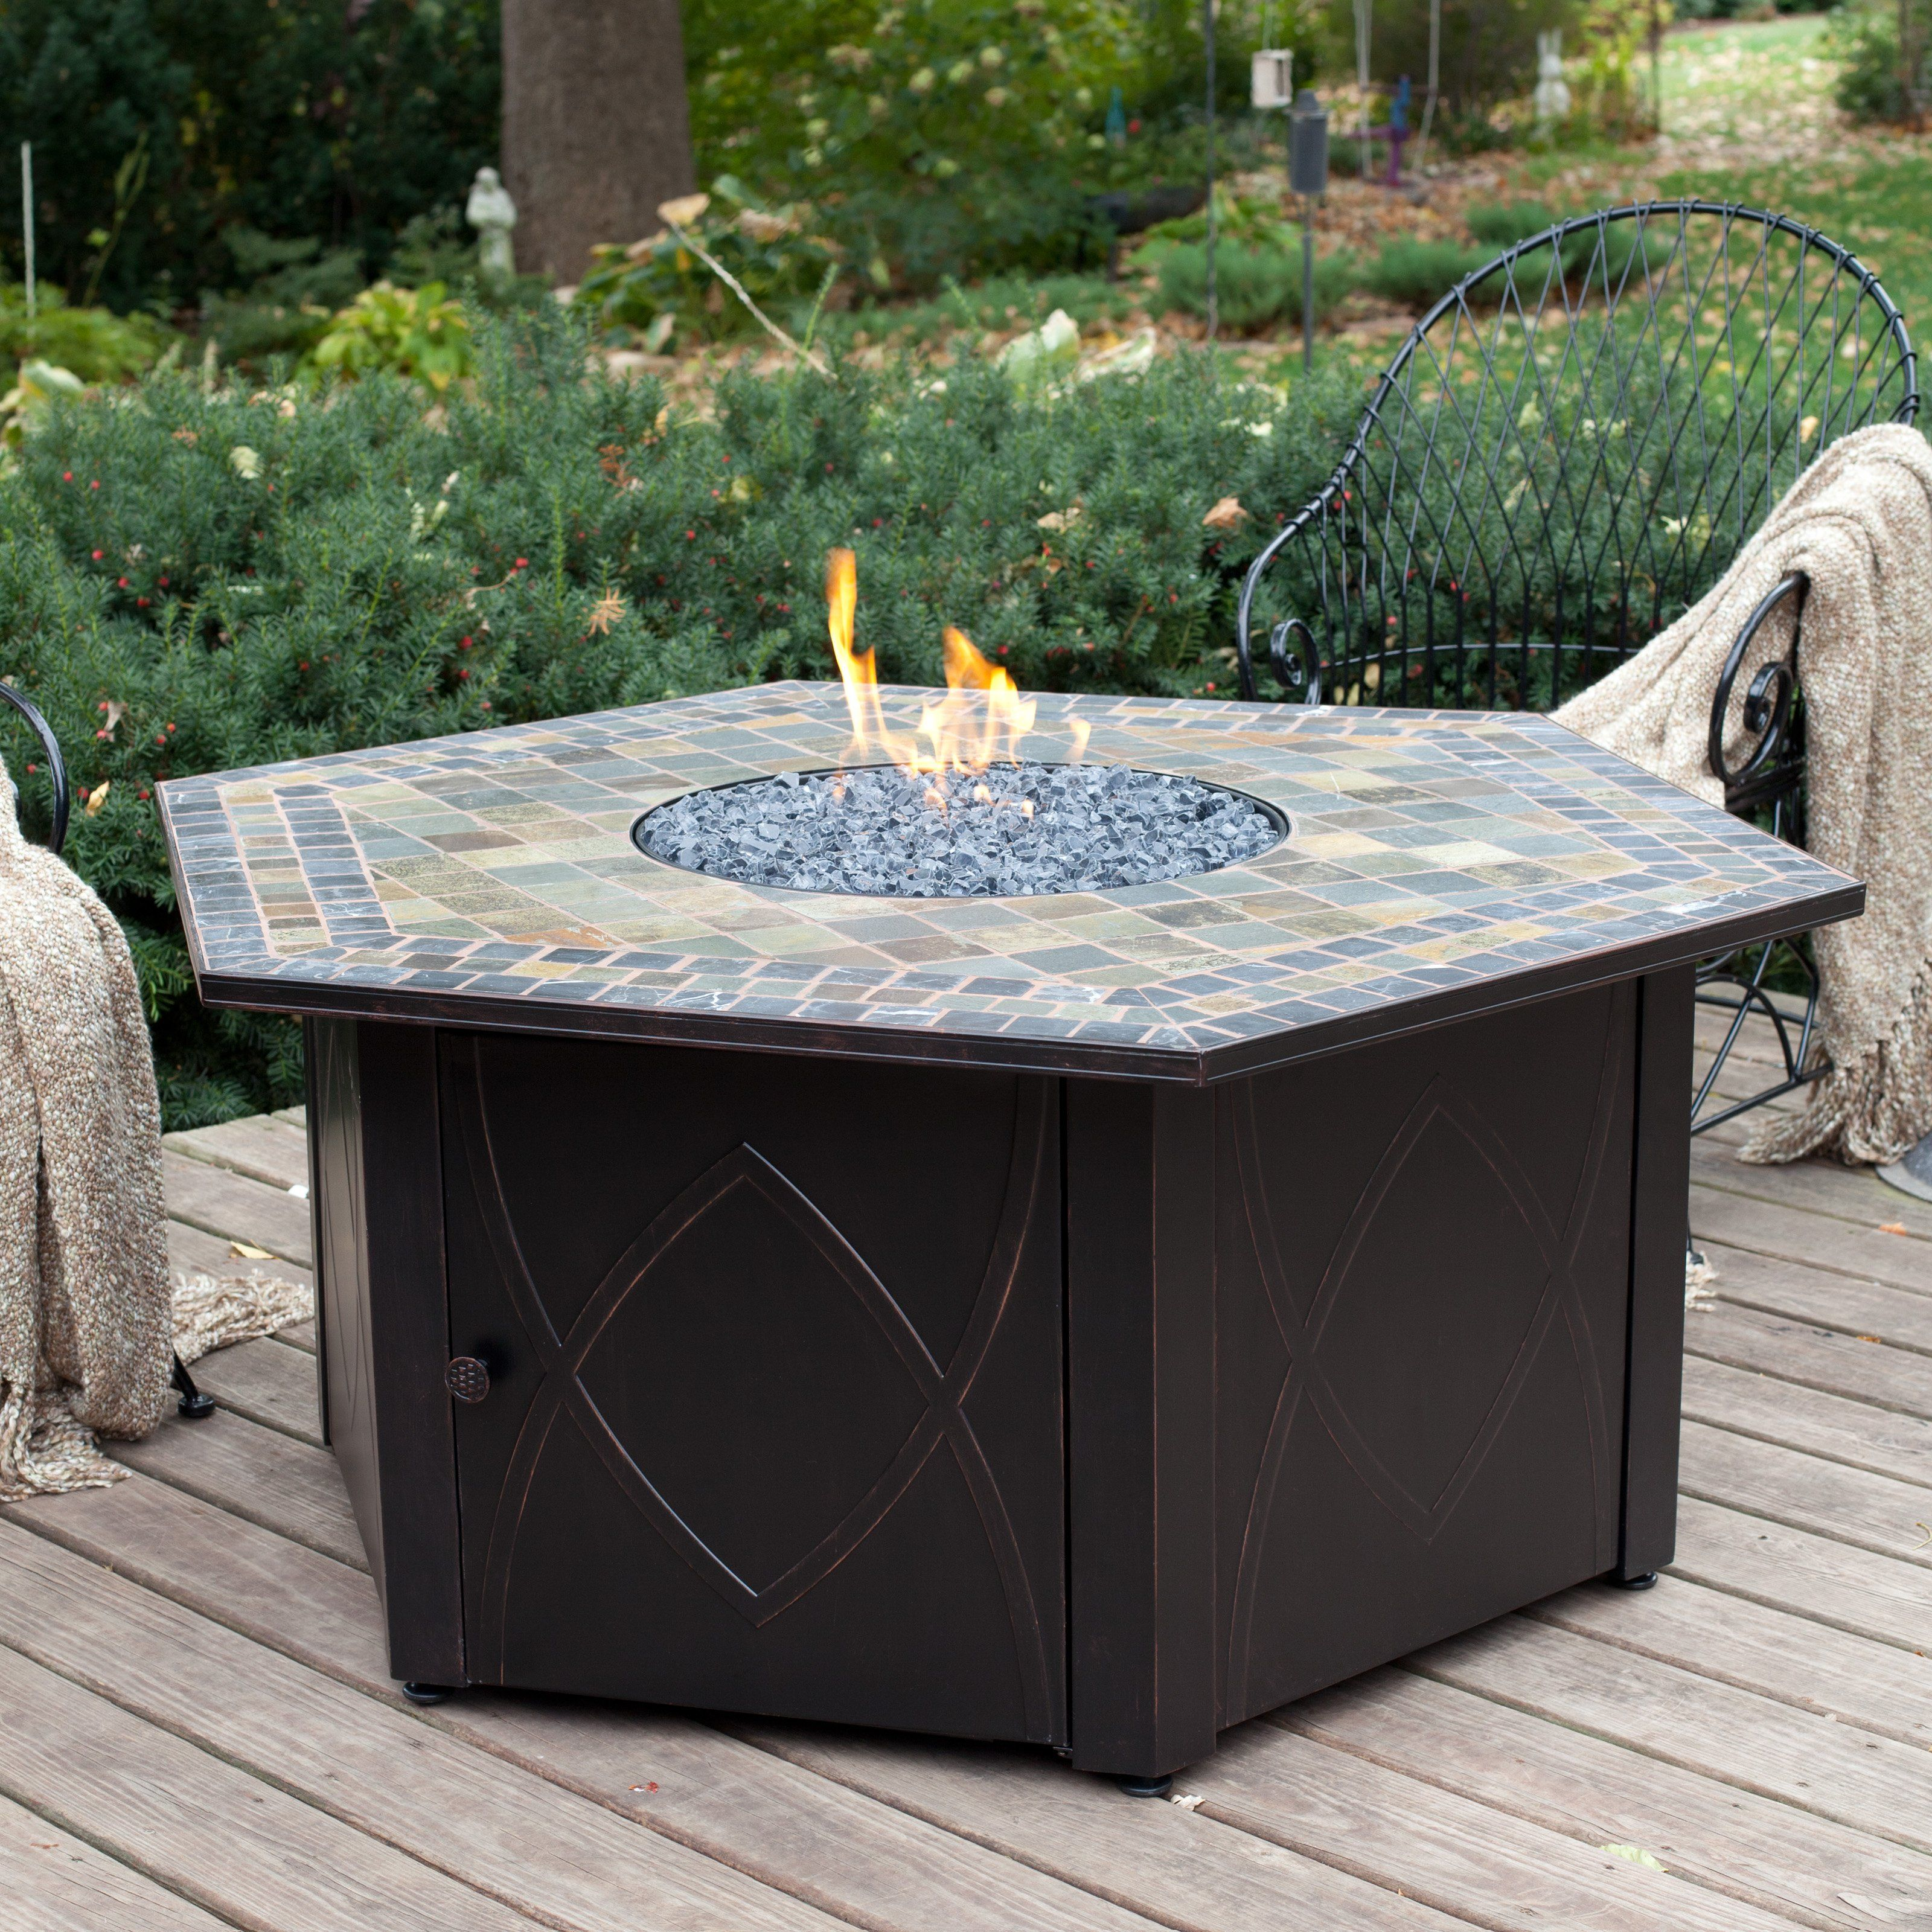 Uniflame in lp gas outdoor fire pit table with decorative slate